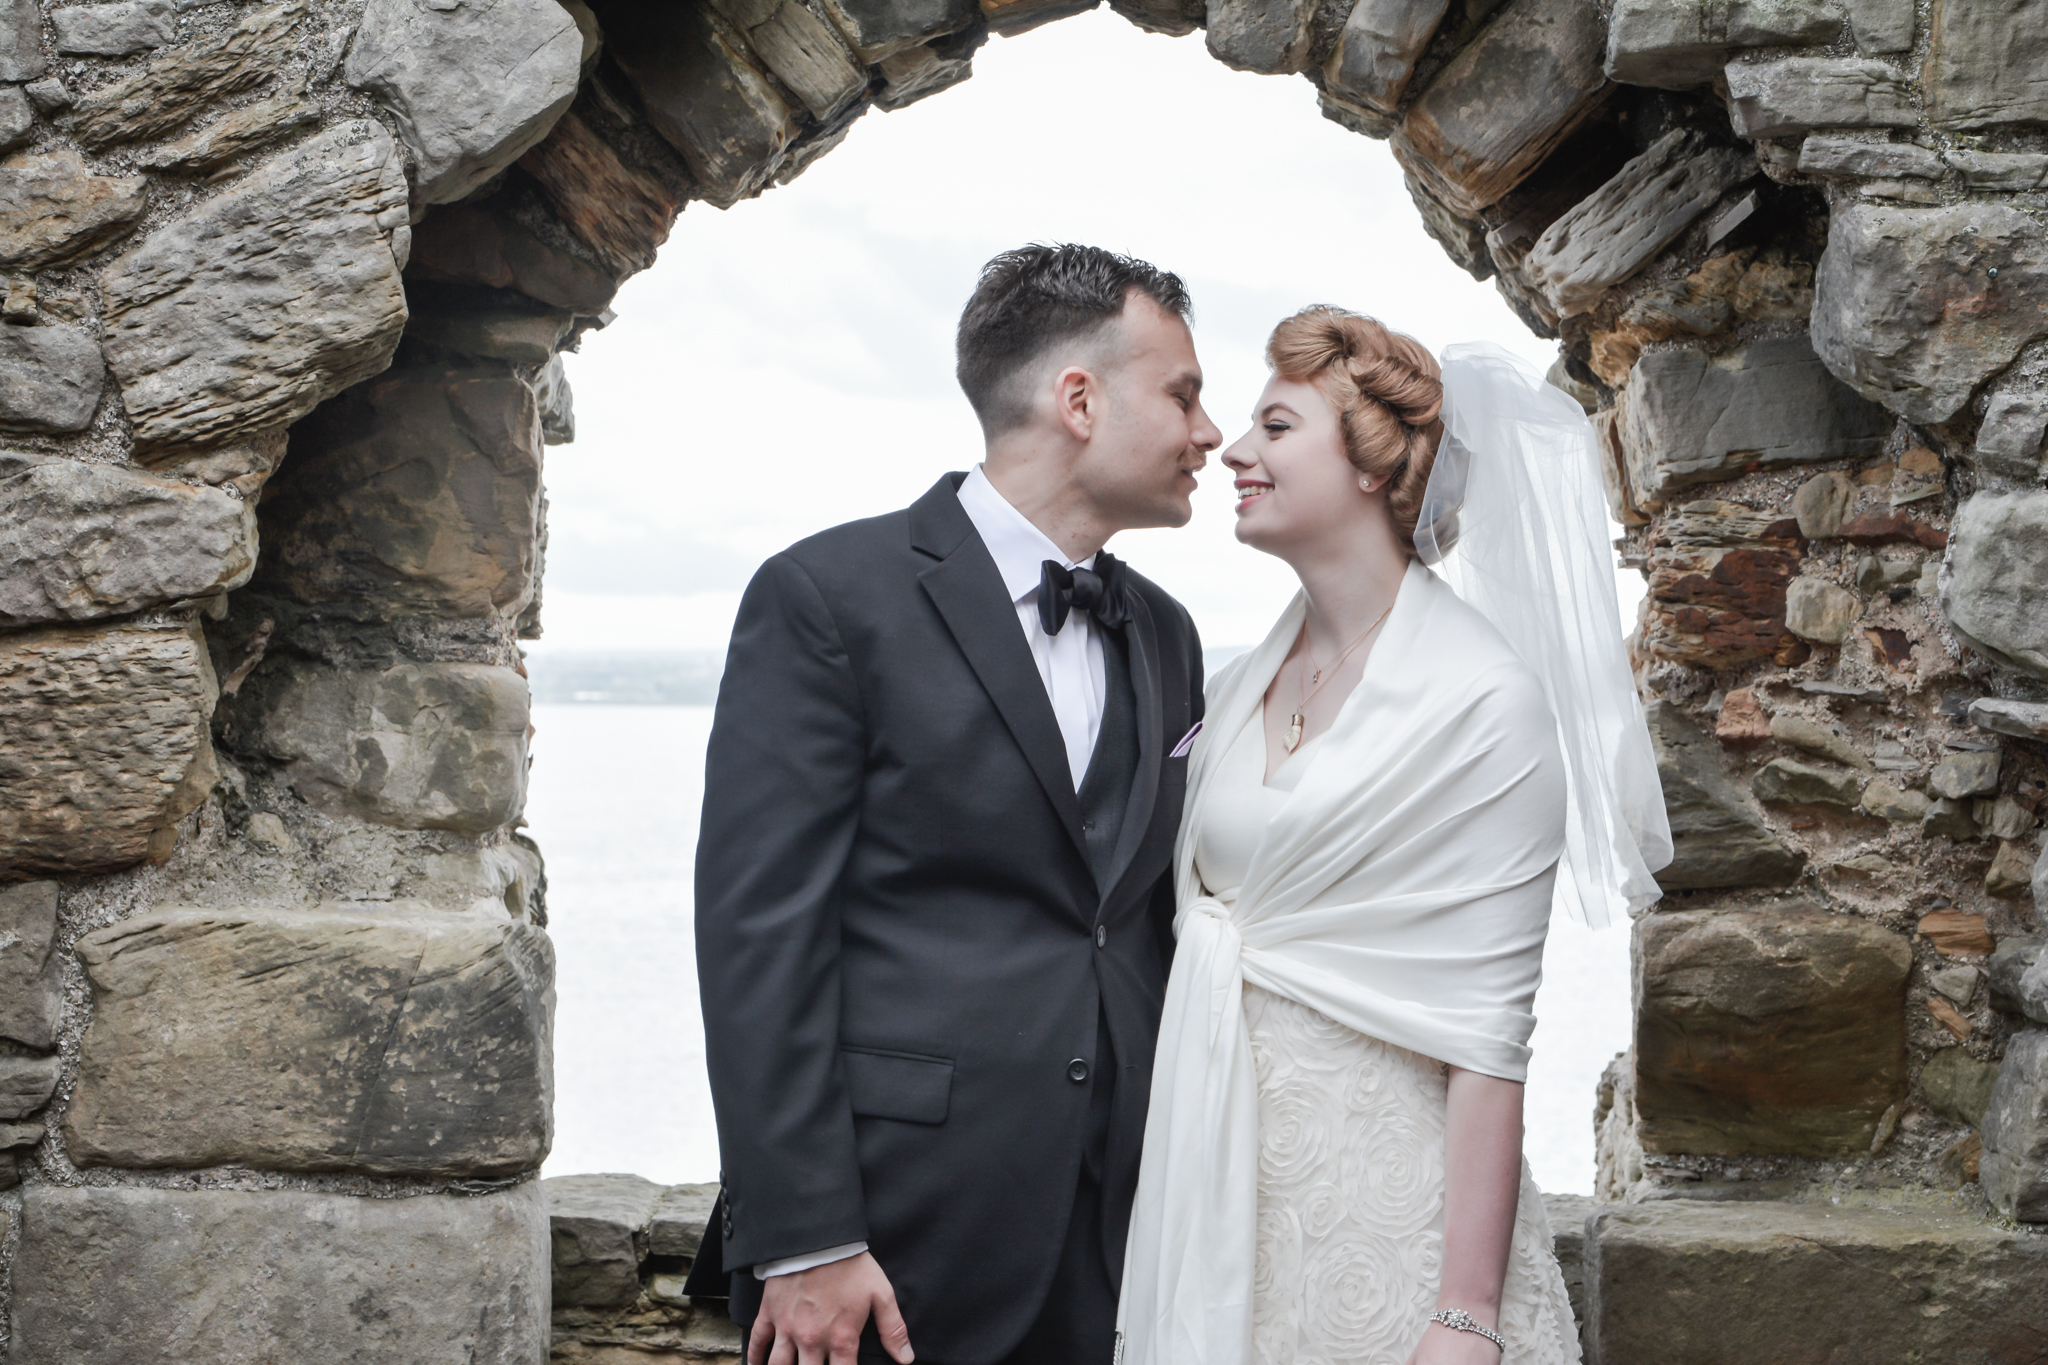 Agnostic Scotland Wedding Celebrant, Onie Tibbitt, conducting a beautiful and personal Wedding Ceremony on Inchcolm Island.